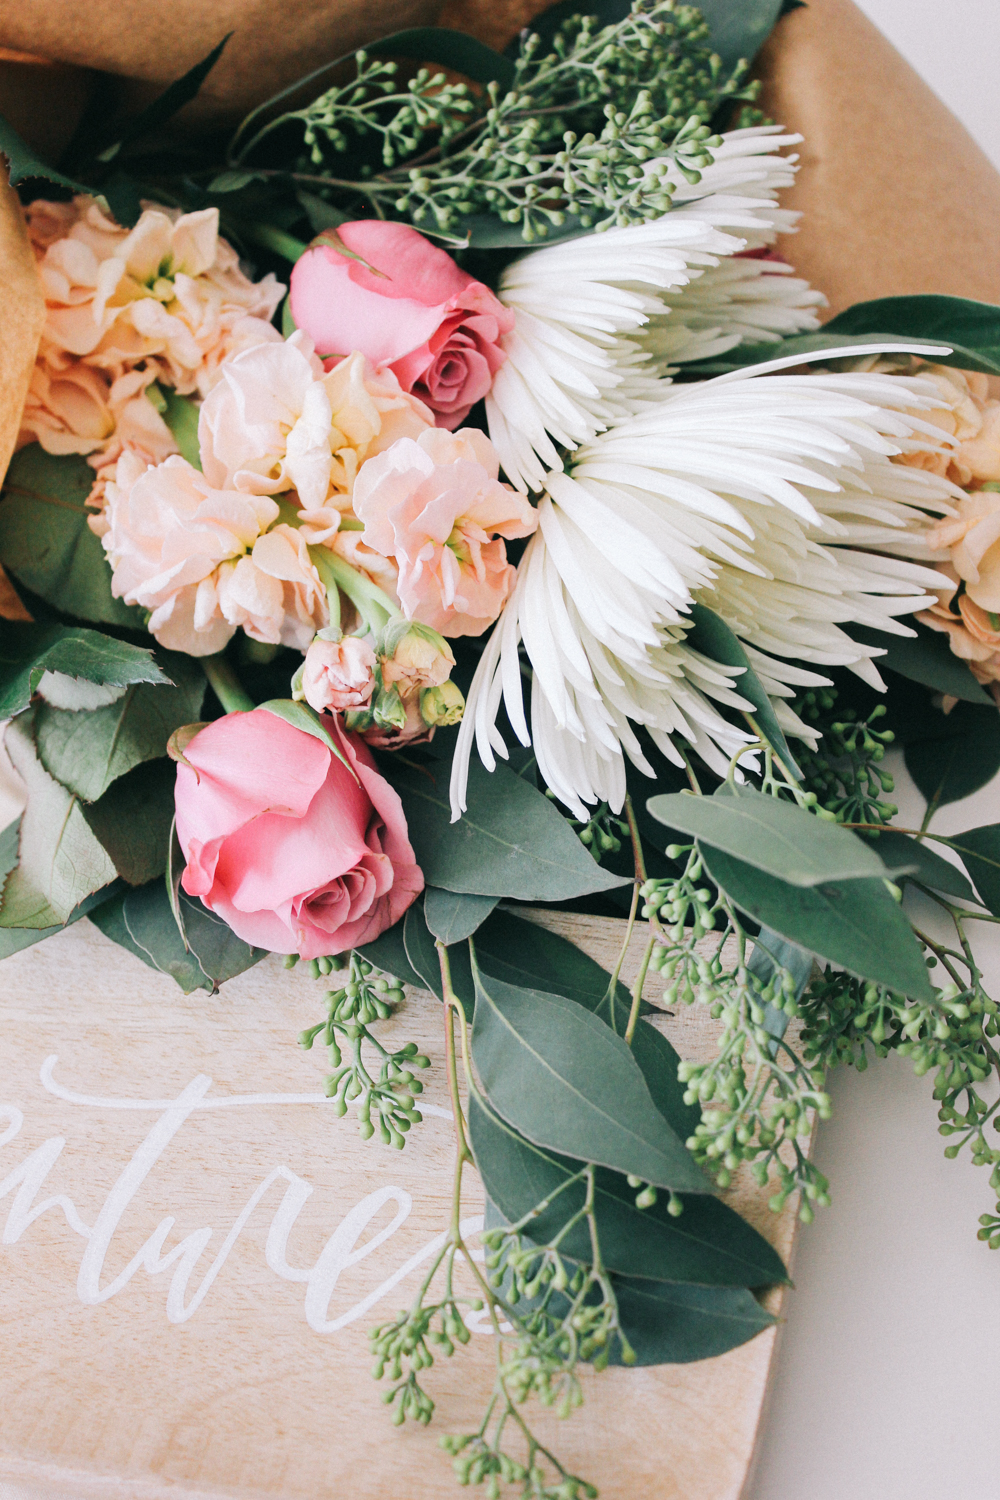 Re-wrap grocery store blooms for a sophisticated bouquet on a budget! | A Fabulous Fete